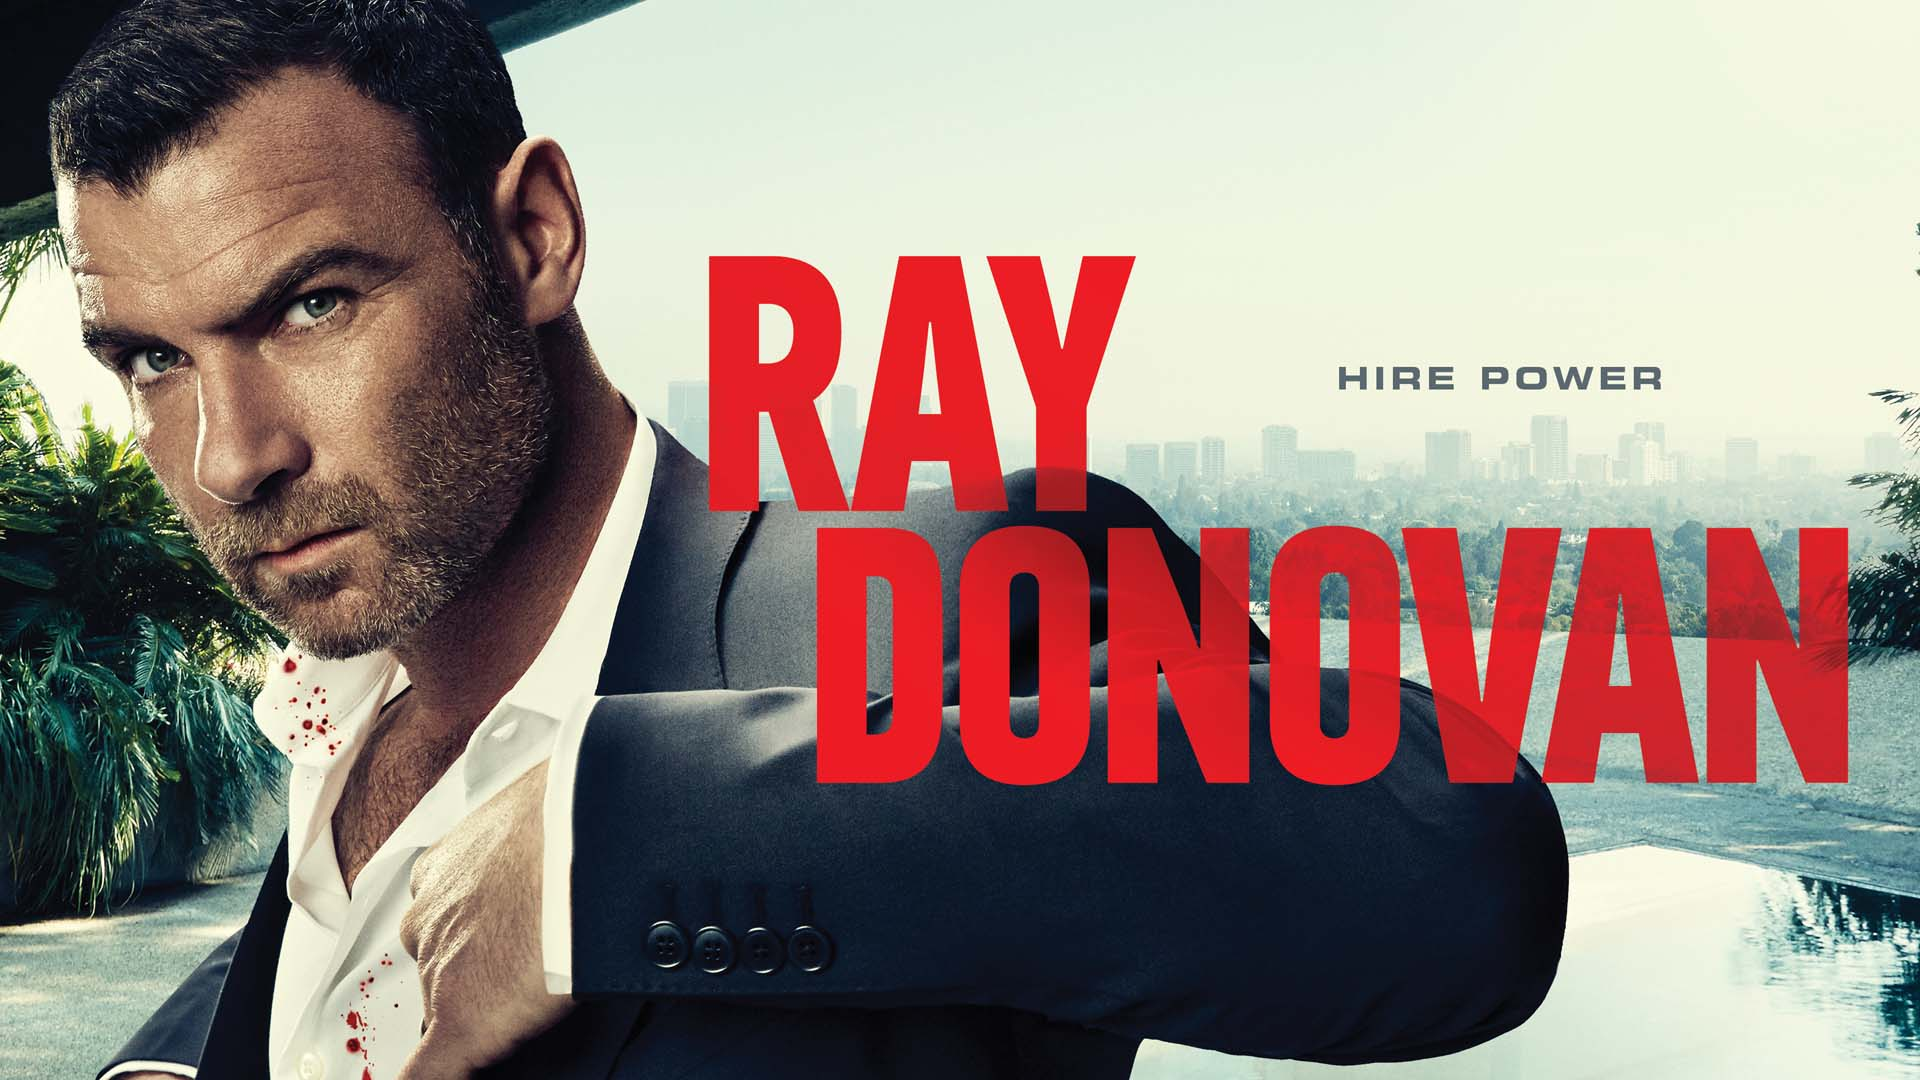 Ray Donovan 7x10 - You'll Never Walk Alone